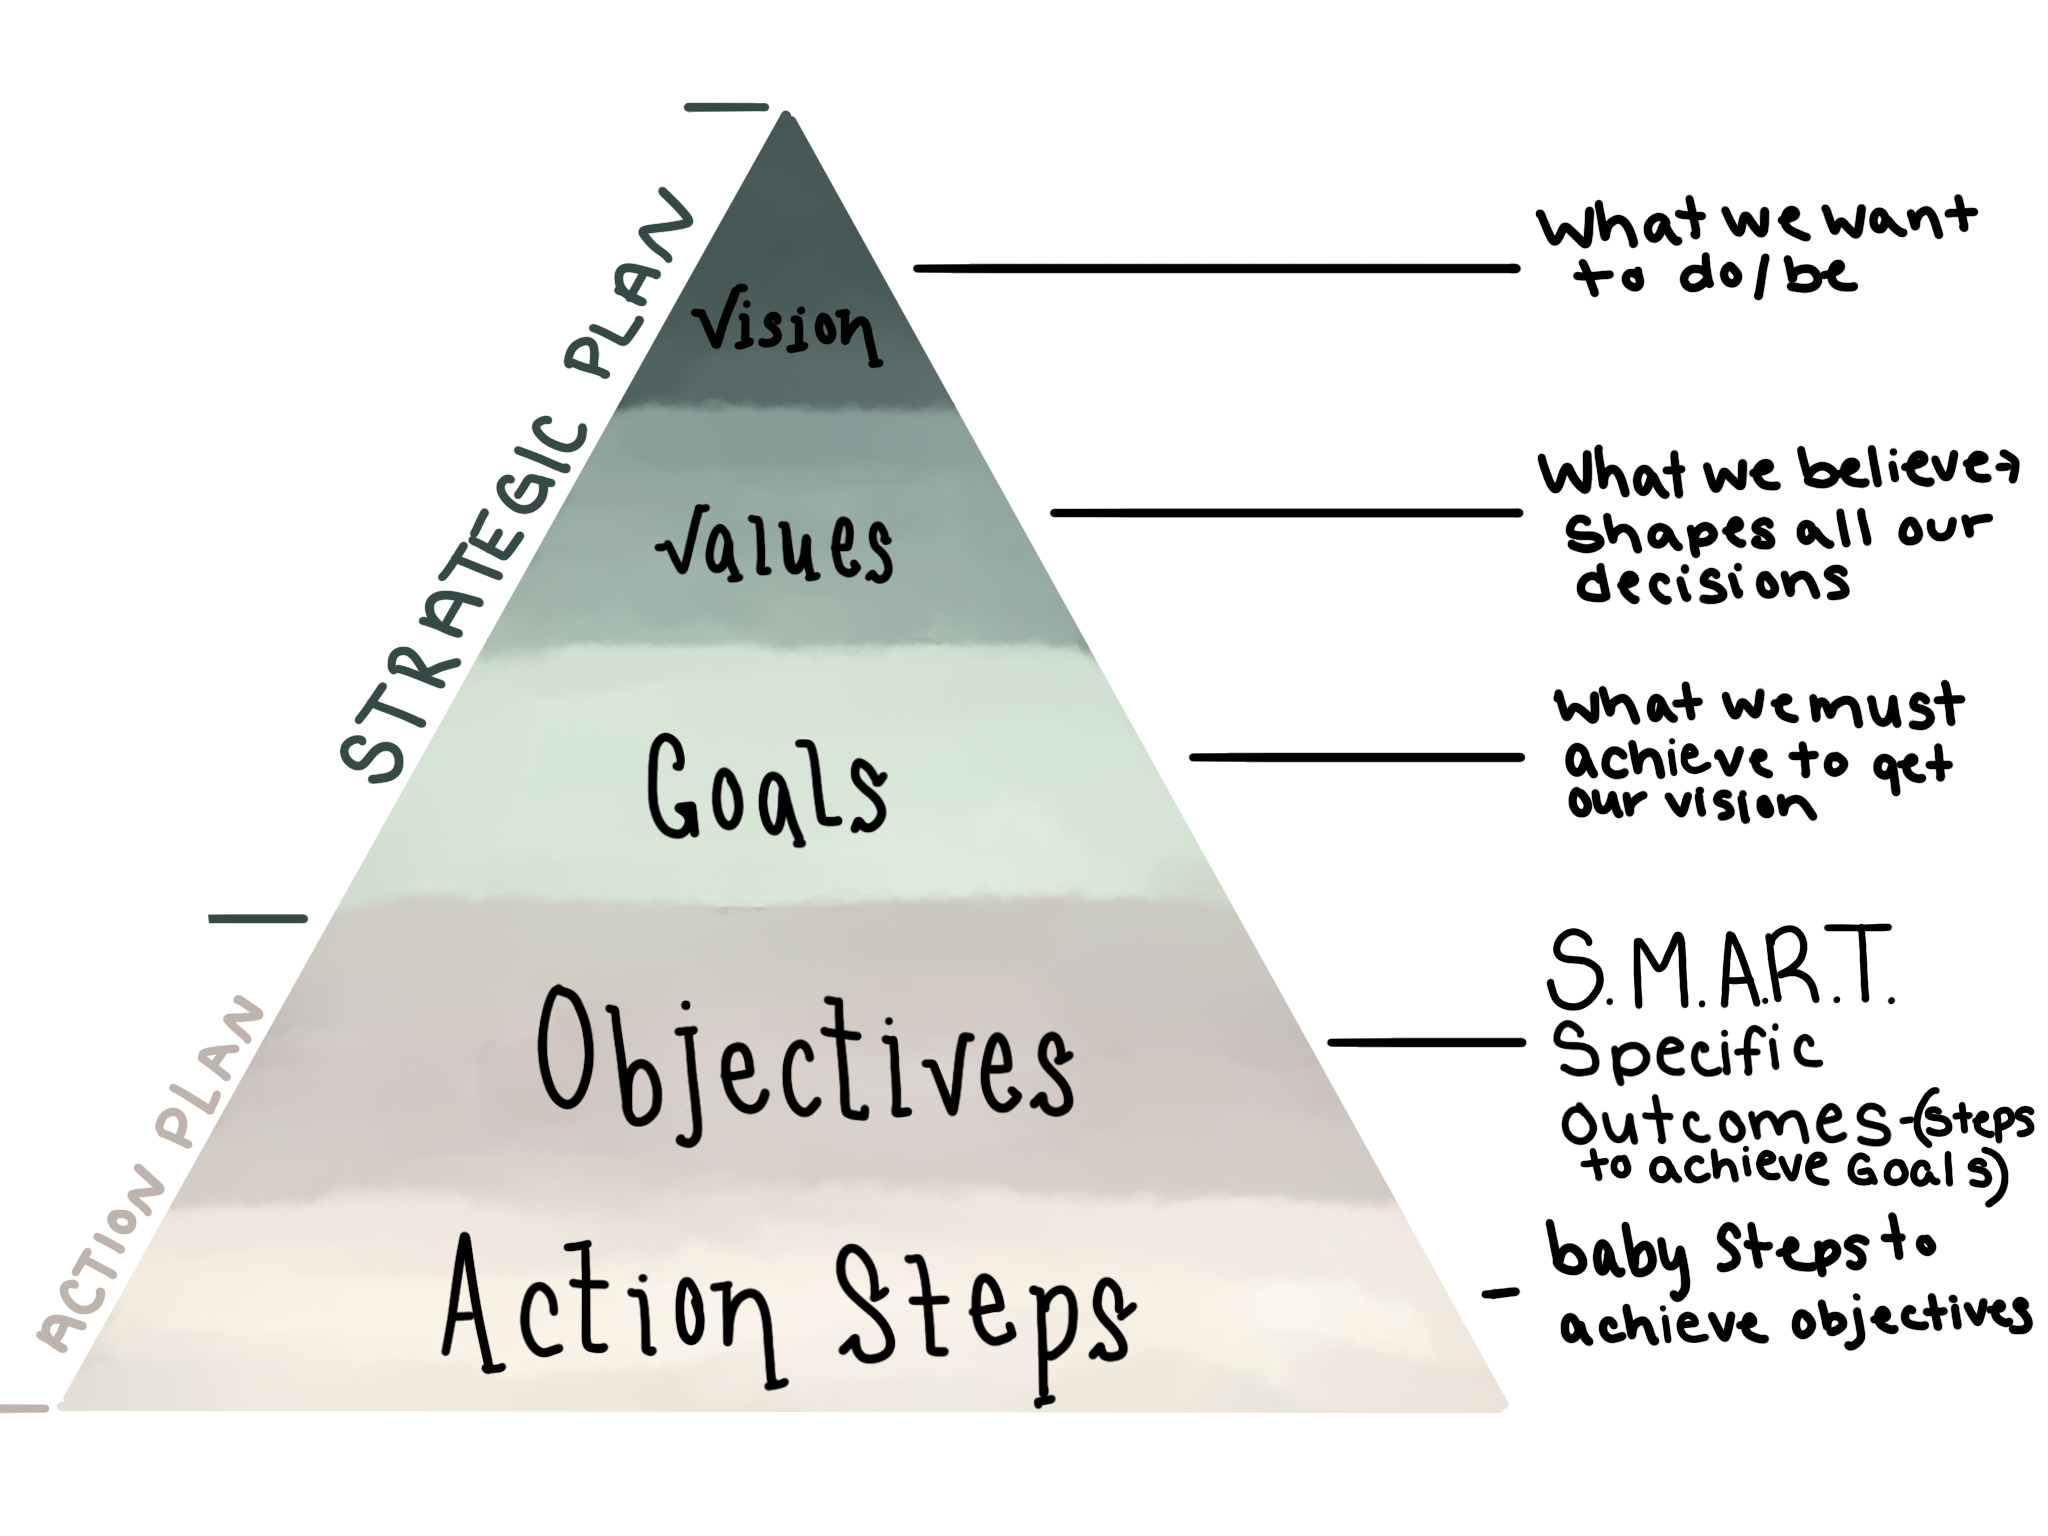 pyramid of goal setting: vision, values, goals, objectives, and action steps. Strategic plan and action plan